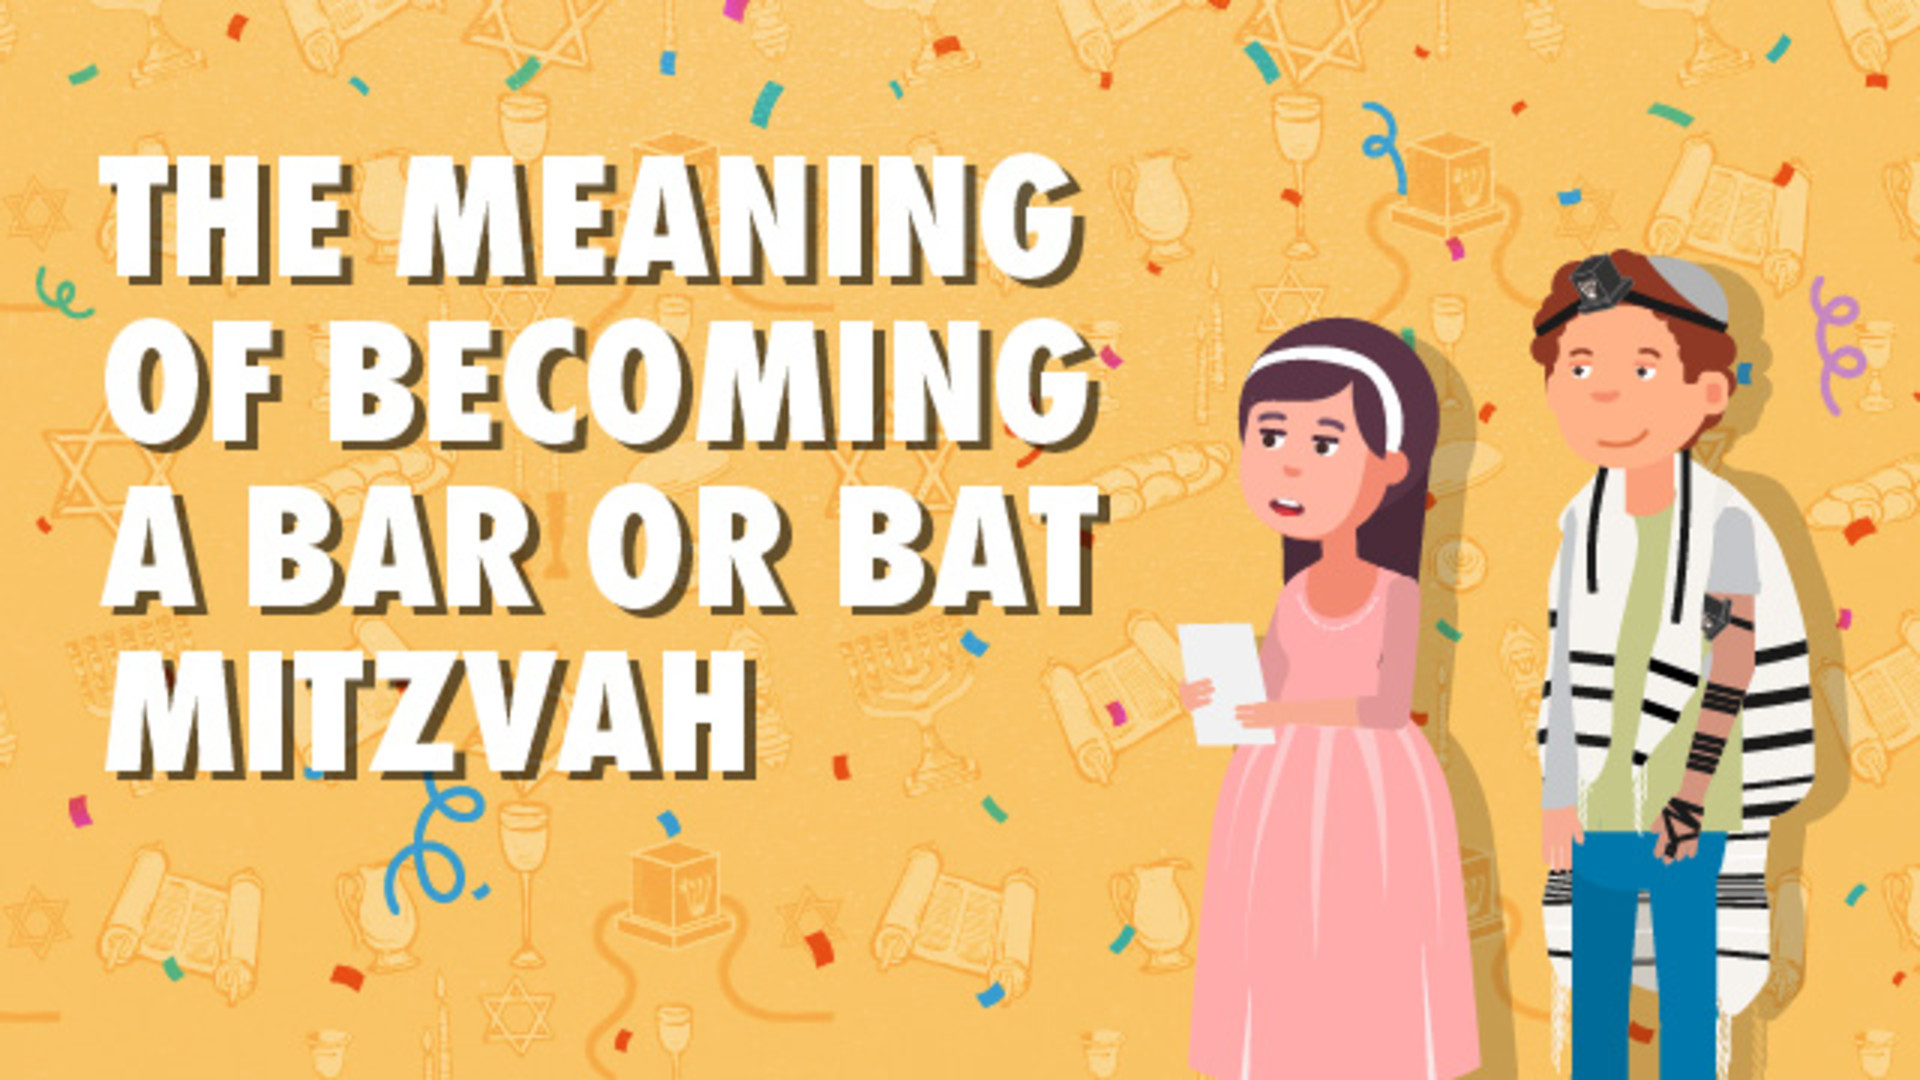 The Meaning of Becoming a Bar or Bat Mitzvah